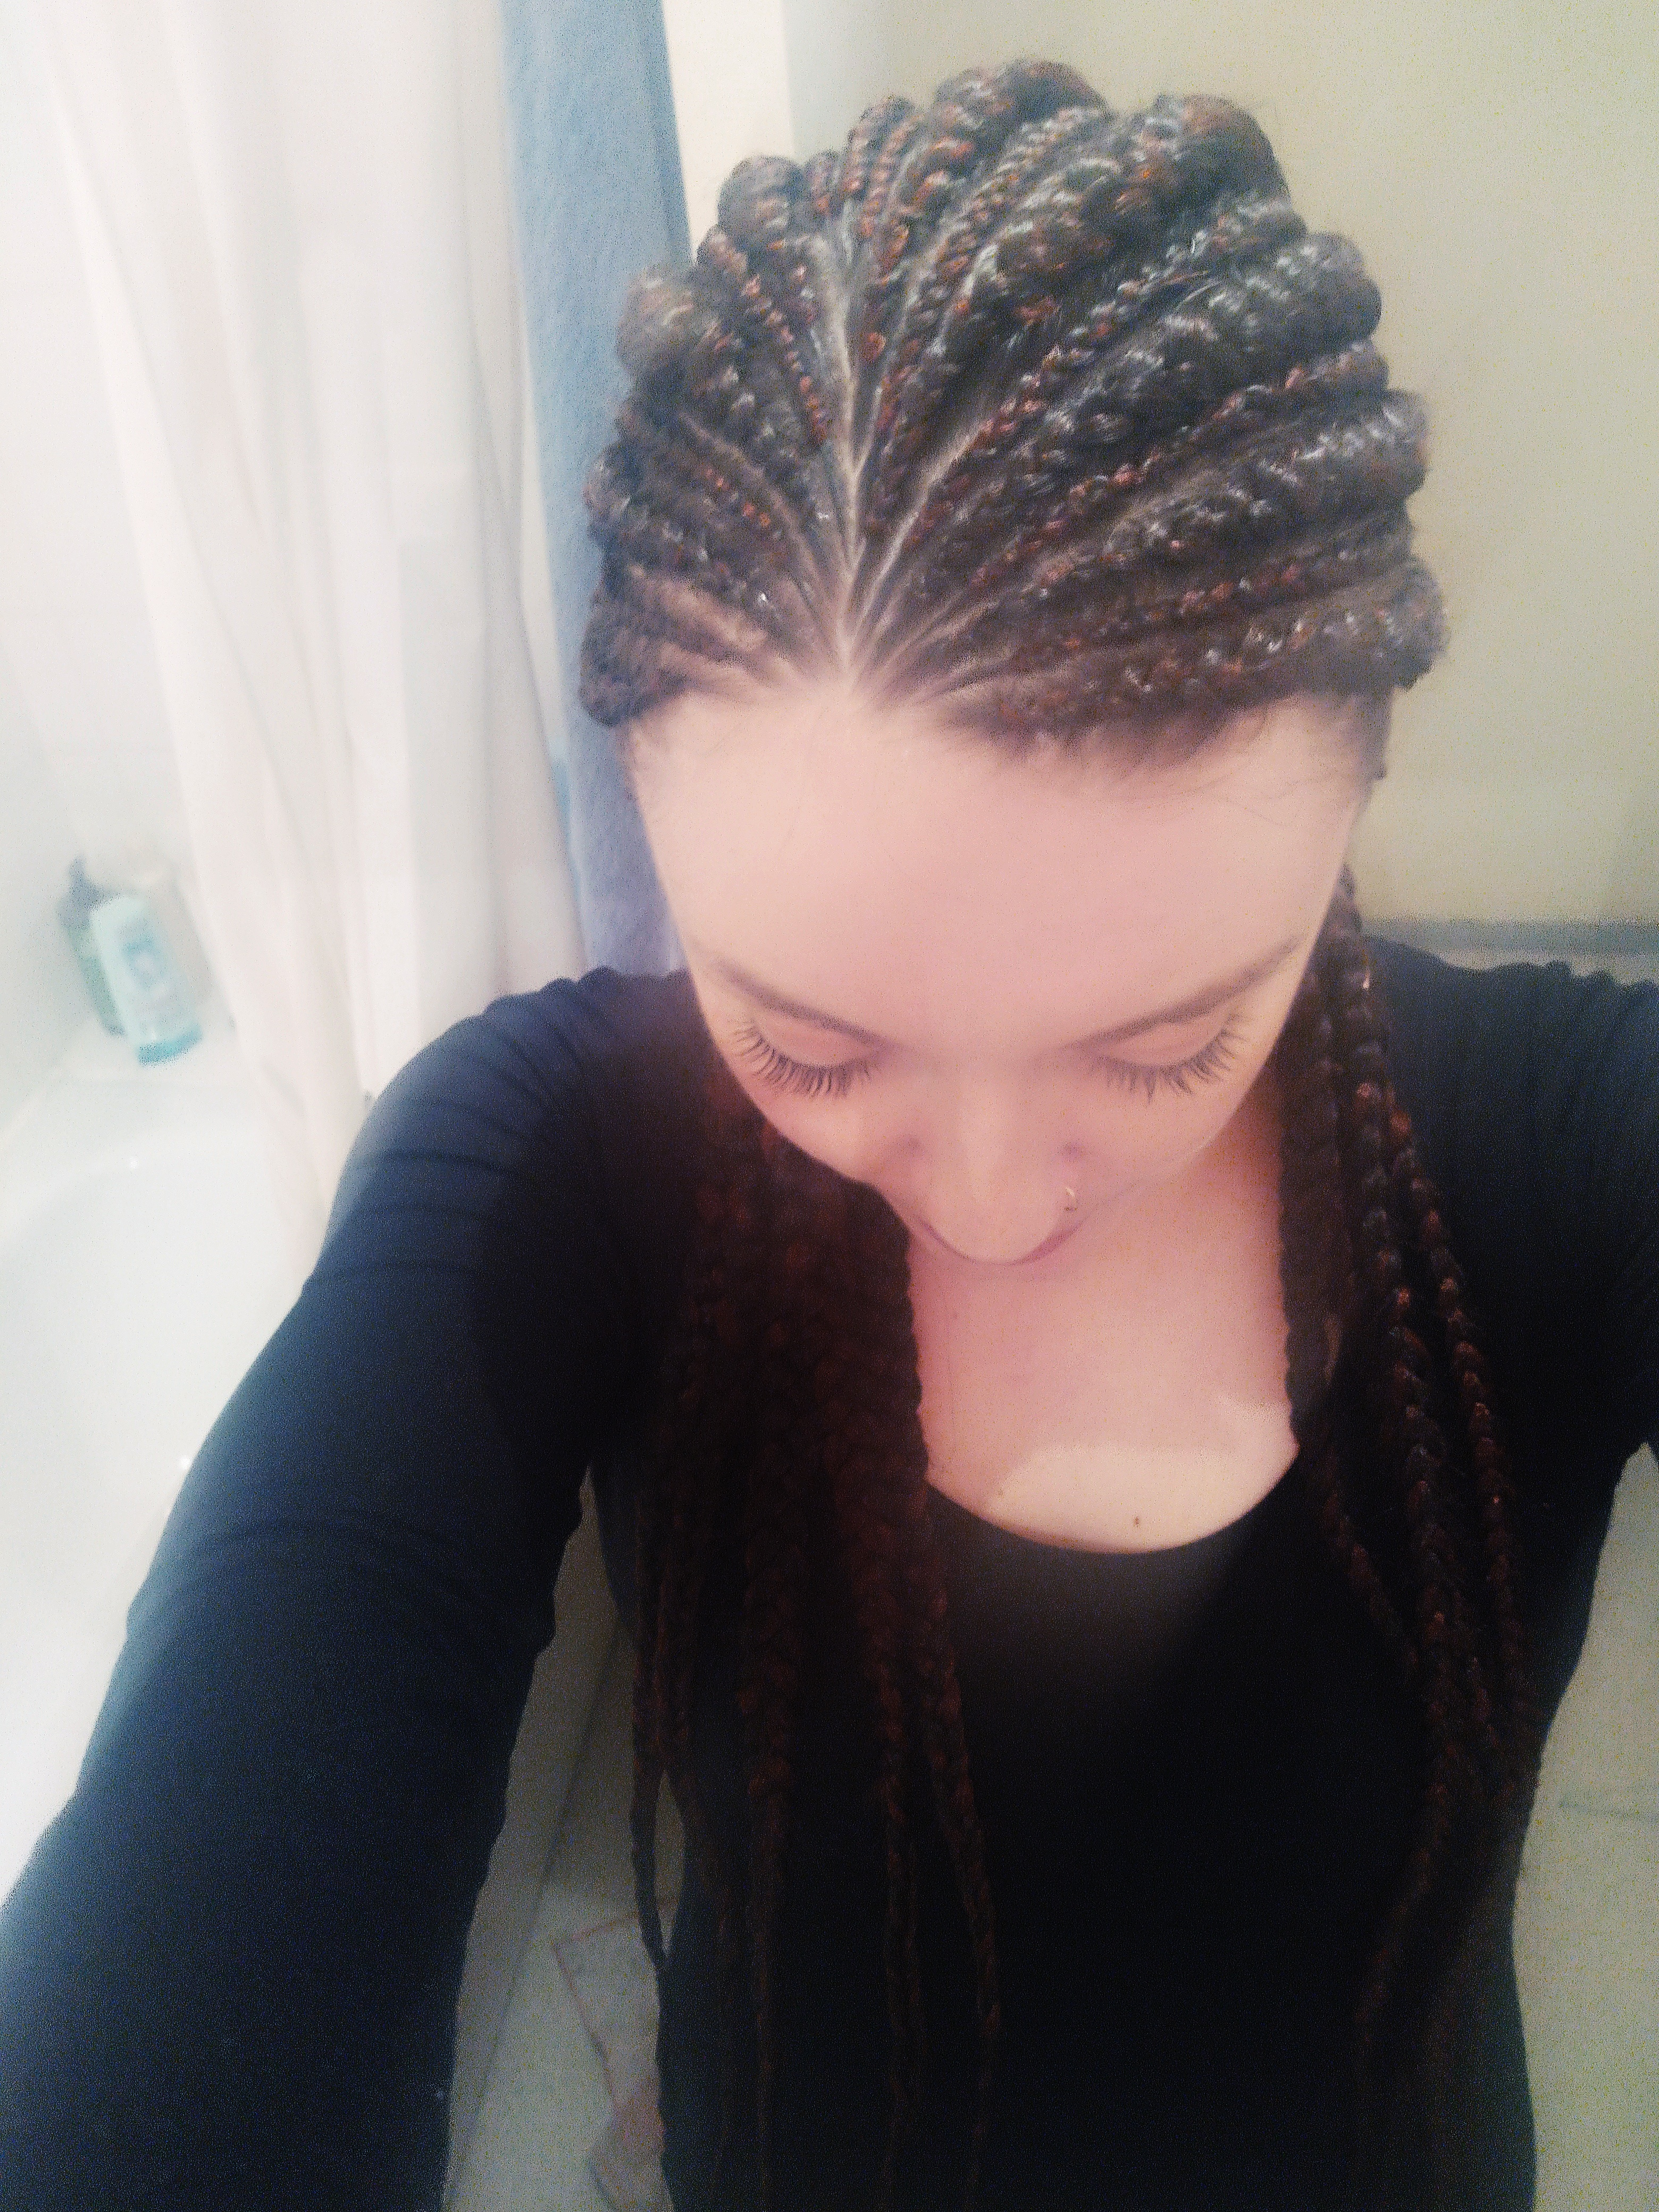 salon de coiffure afro tresse tresses box braids crochet braids vanilles tissages paris 75 77 78 91 92 93 94 95 FLYXKNRX